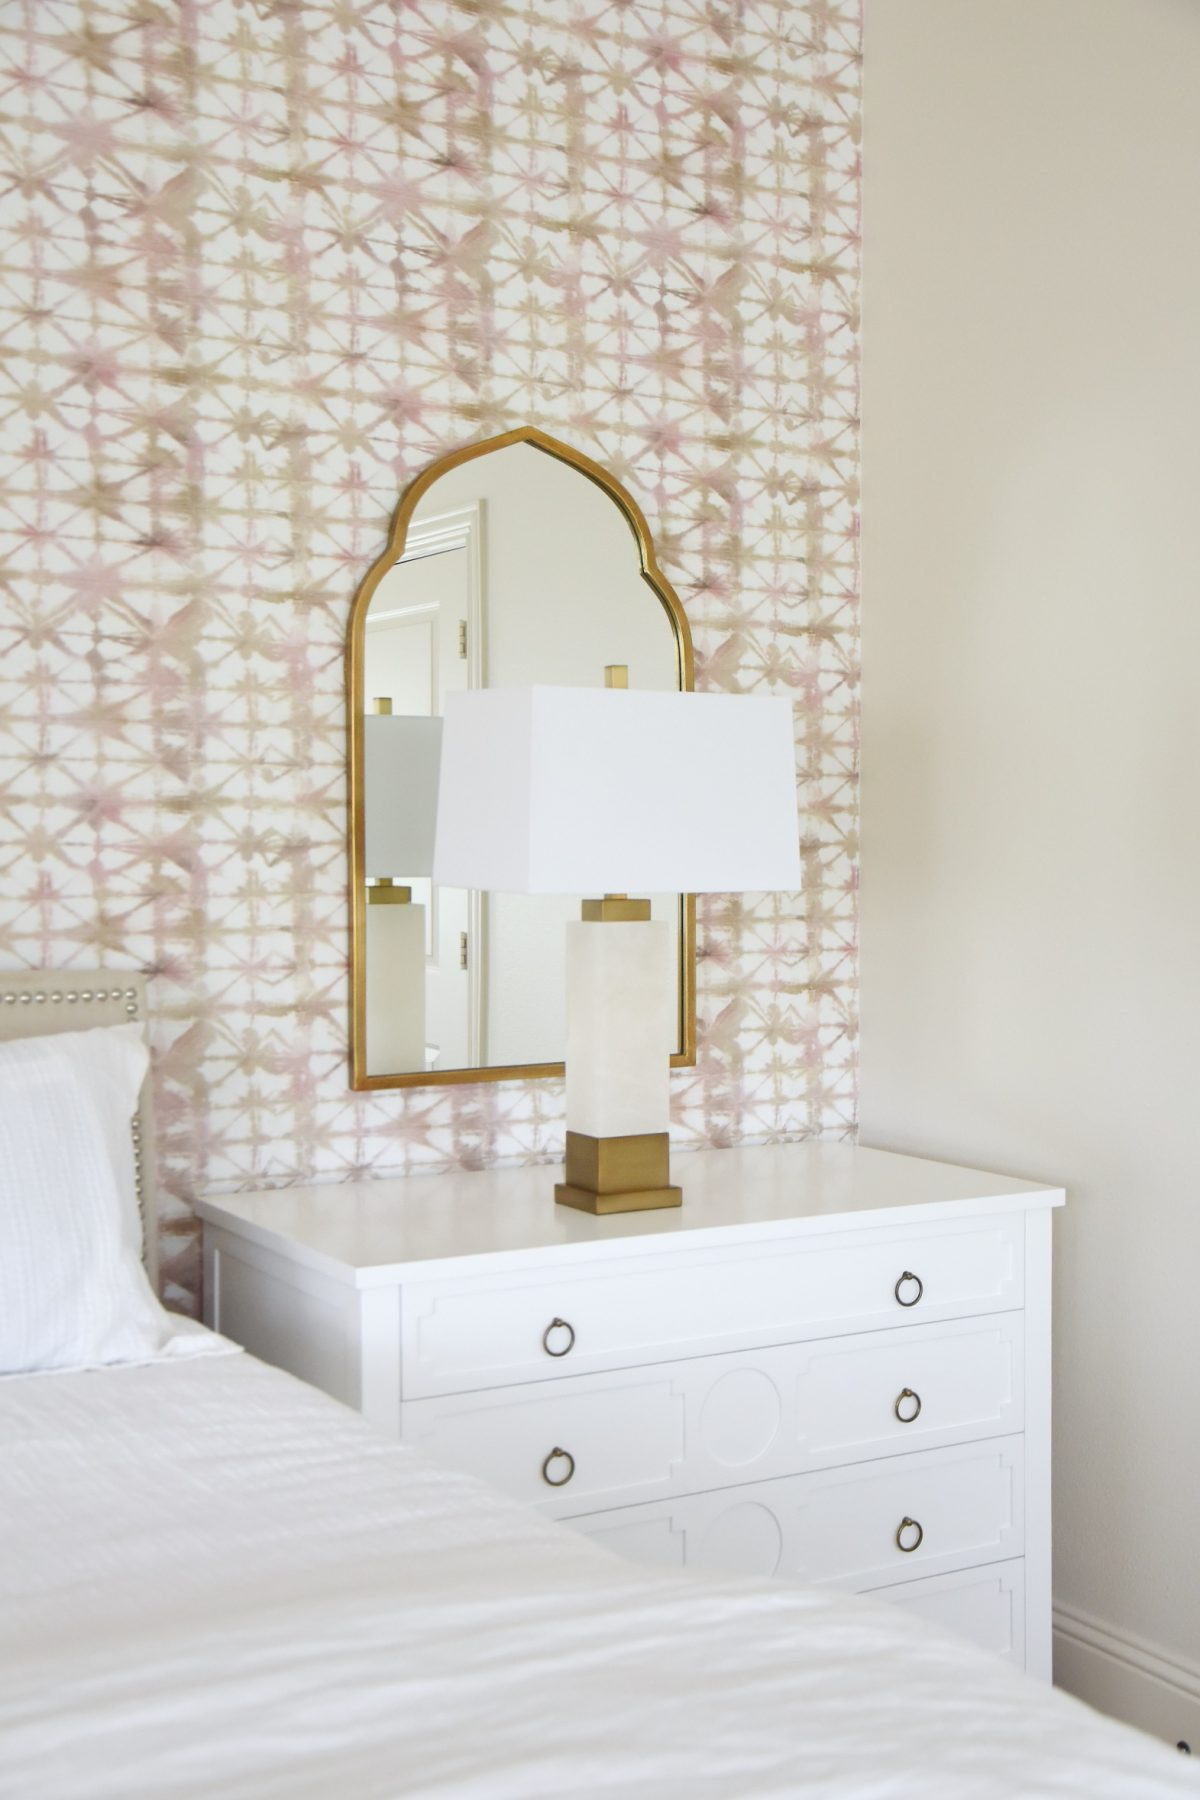 Bedroom lamp and gold arched mirror